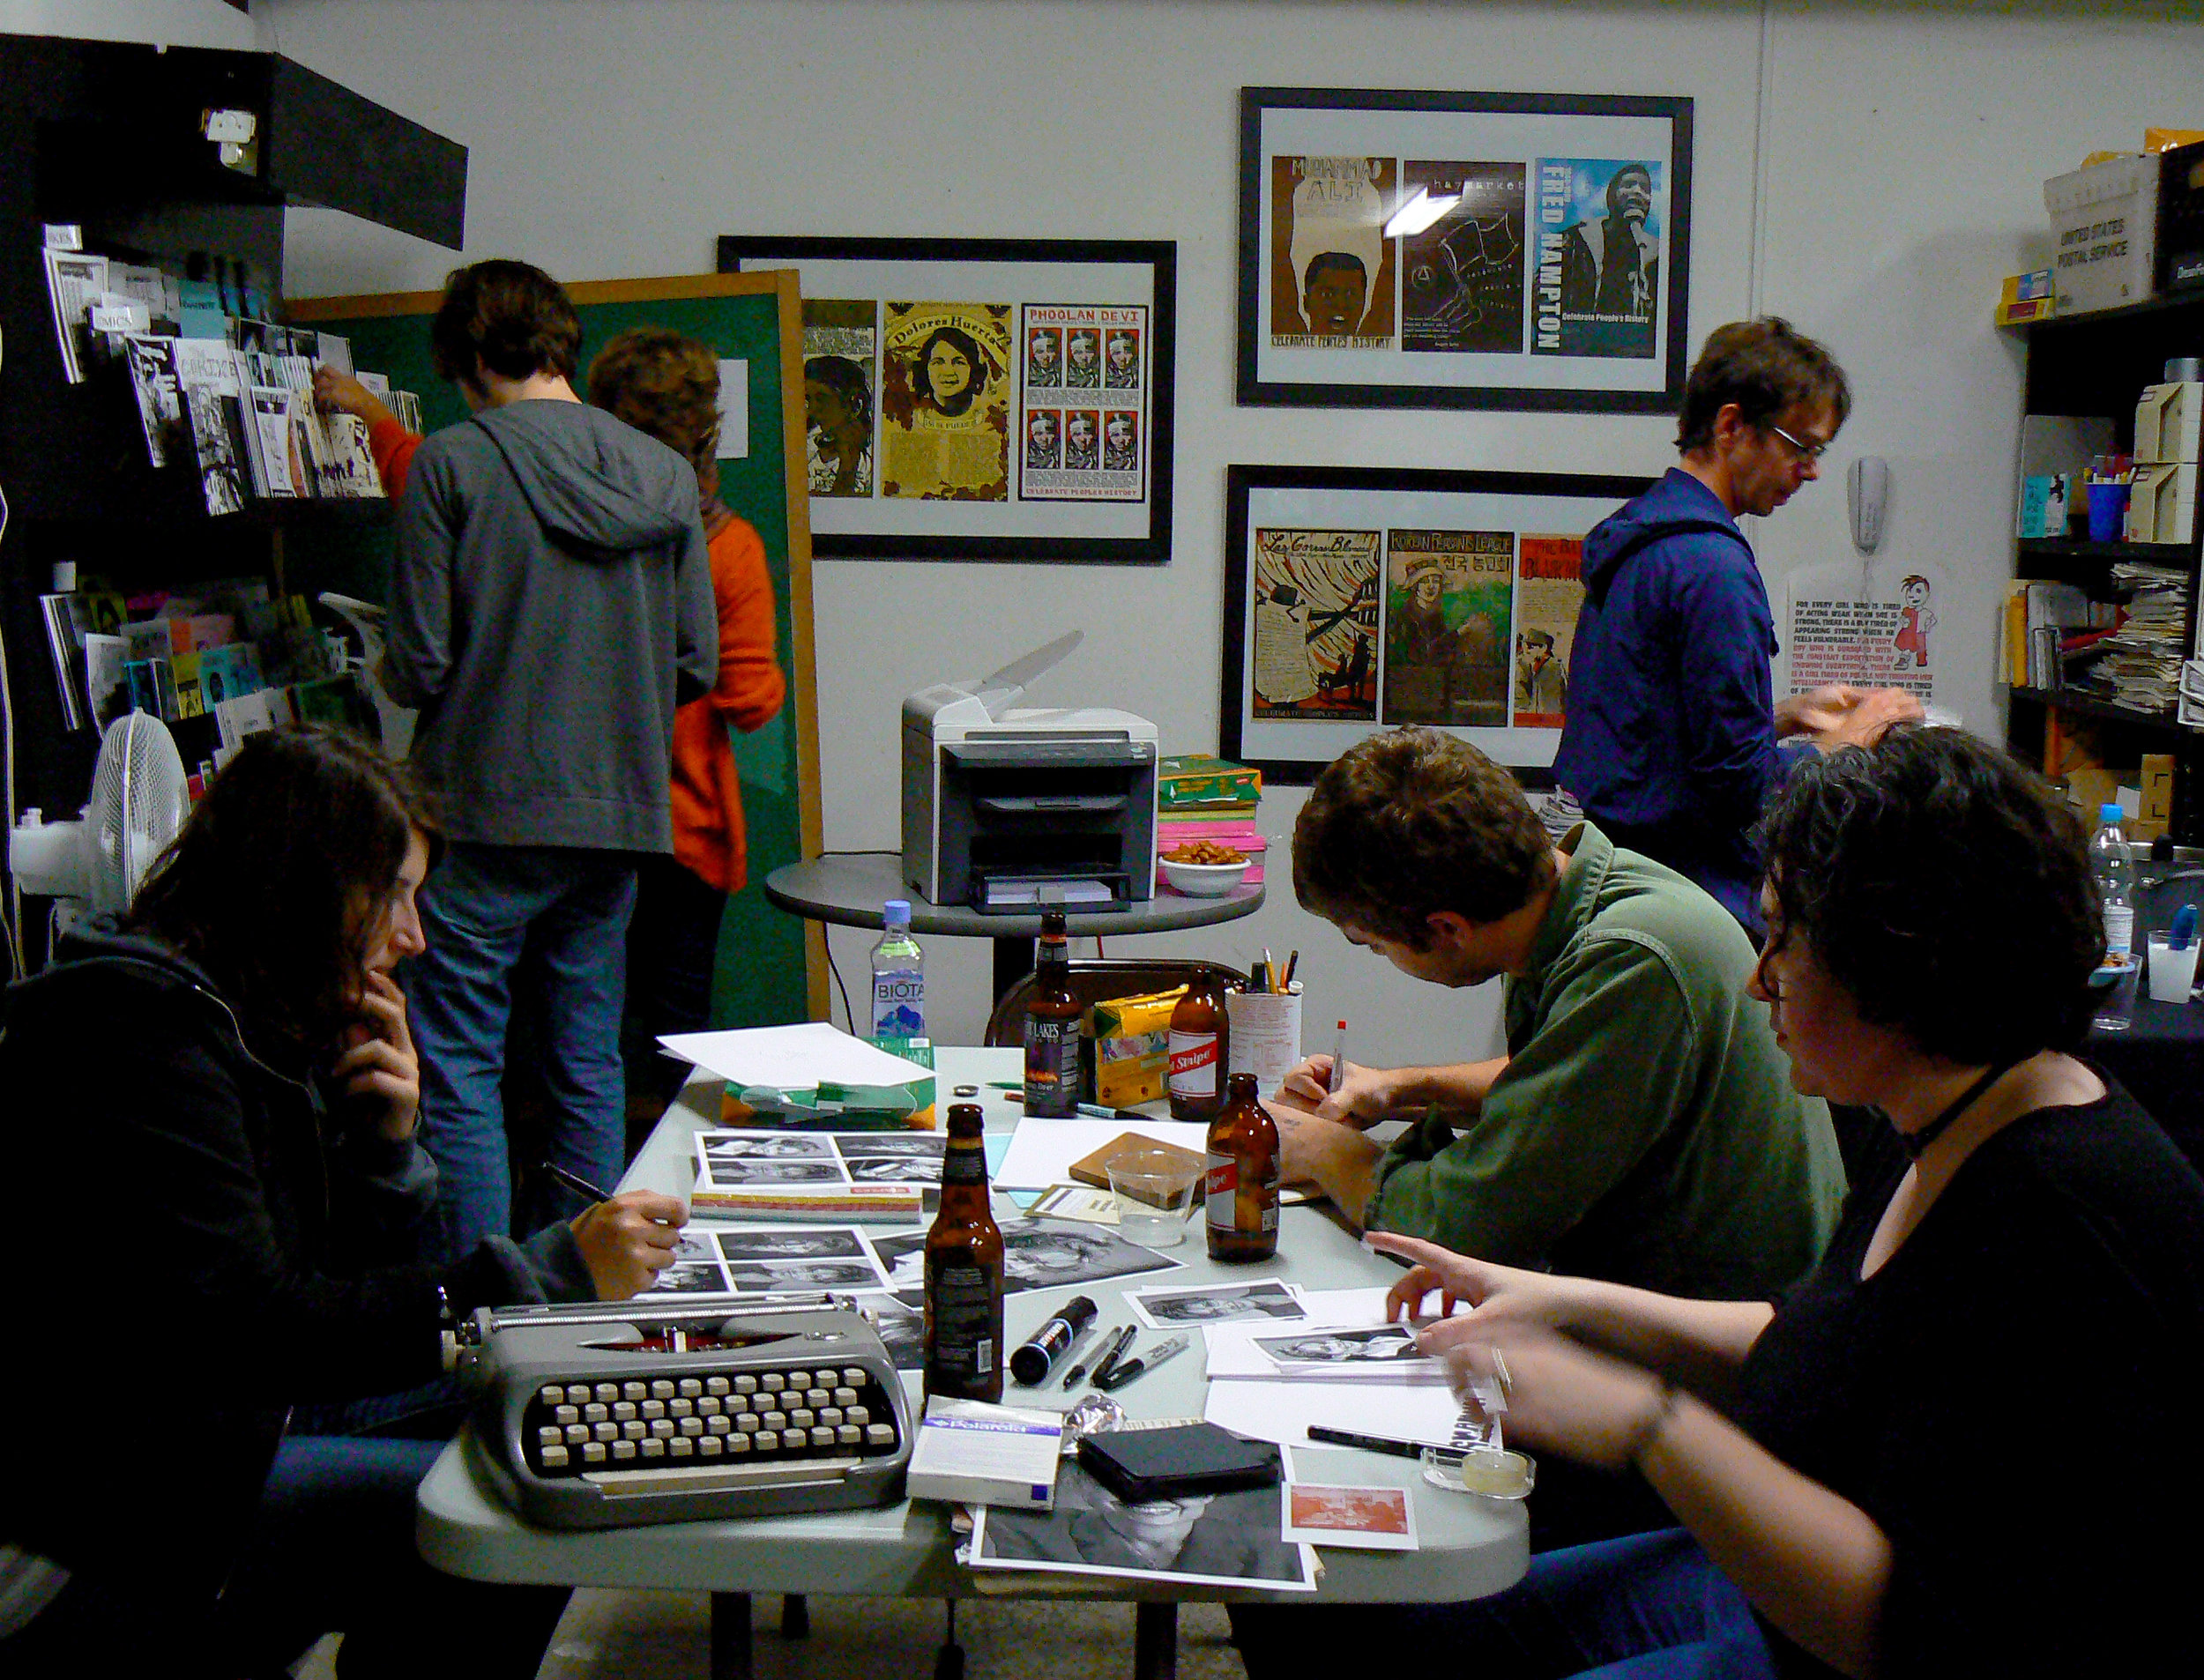 Zine Summit Workshop;discussion about zines, as well as reading and perusing collections of local zines at Sporeprint Infoshop